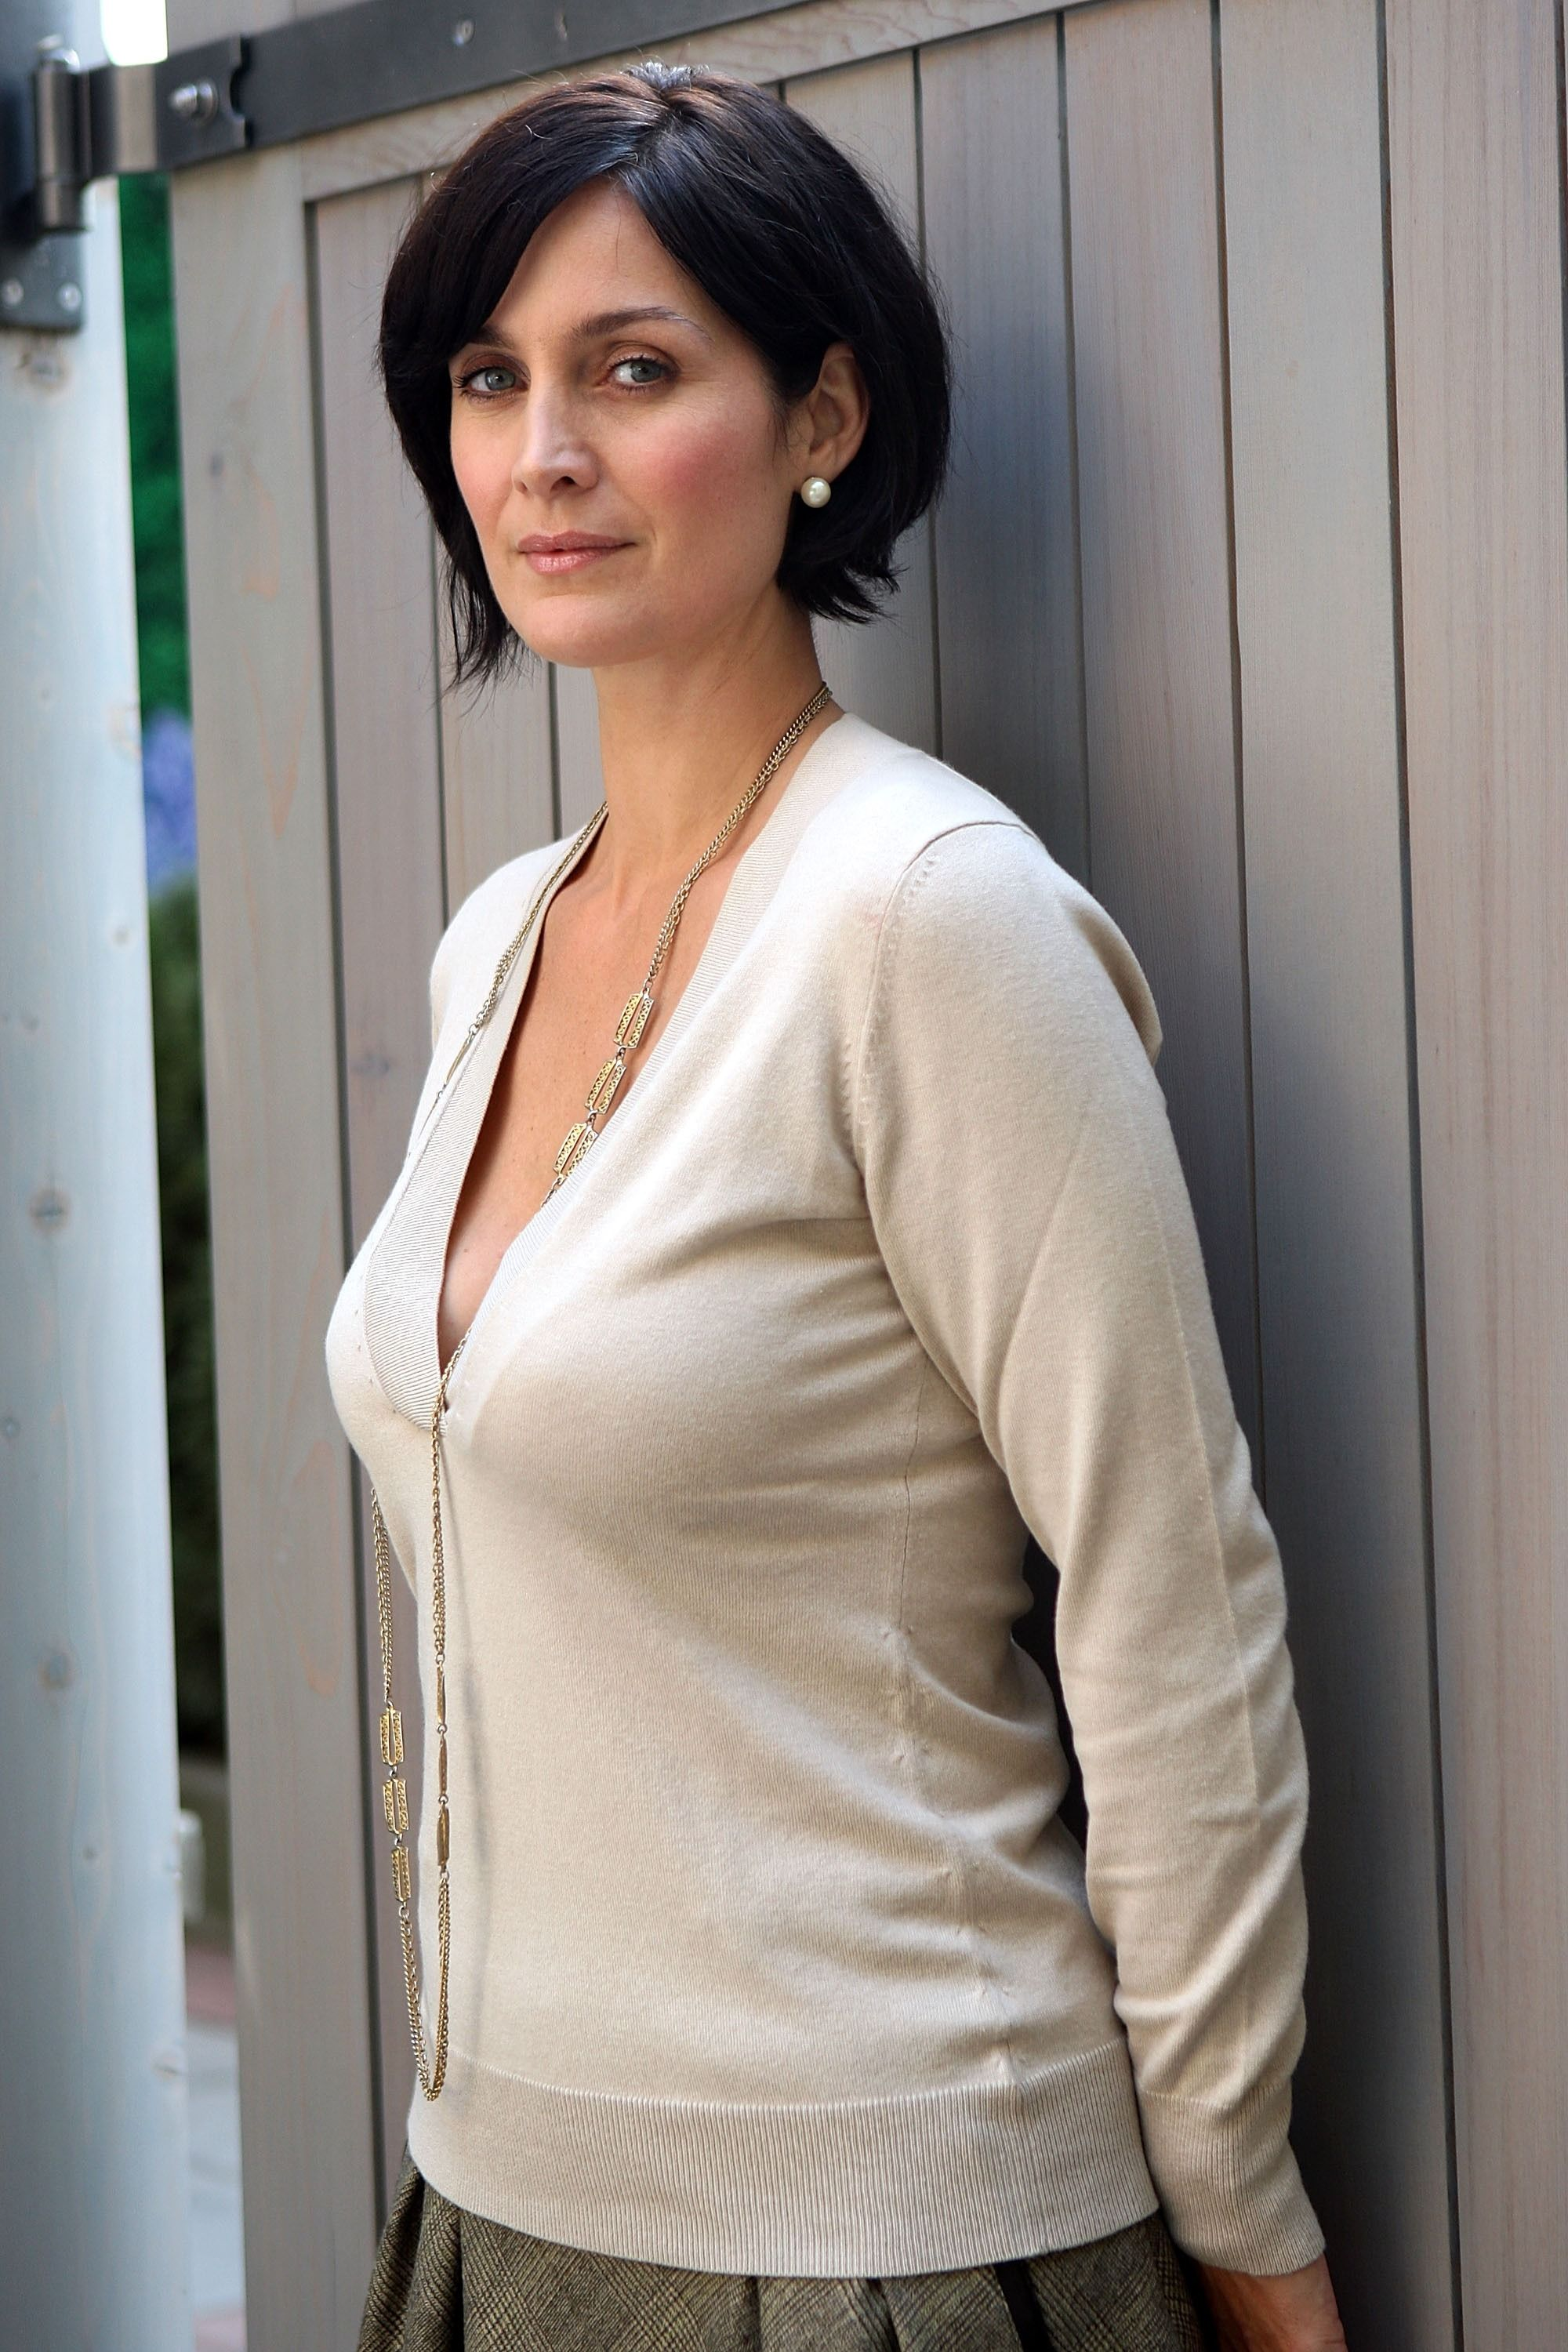 Pin on Carrie Anne Moss